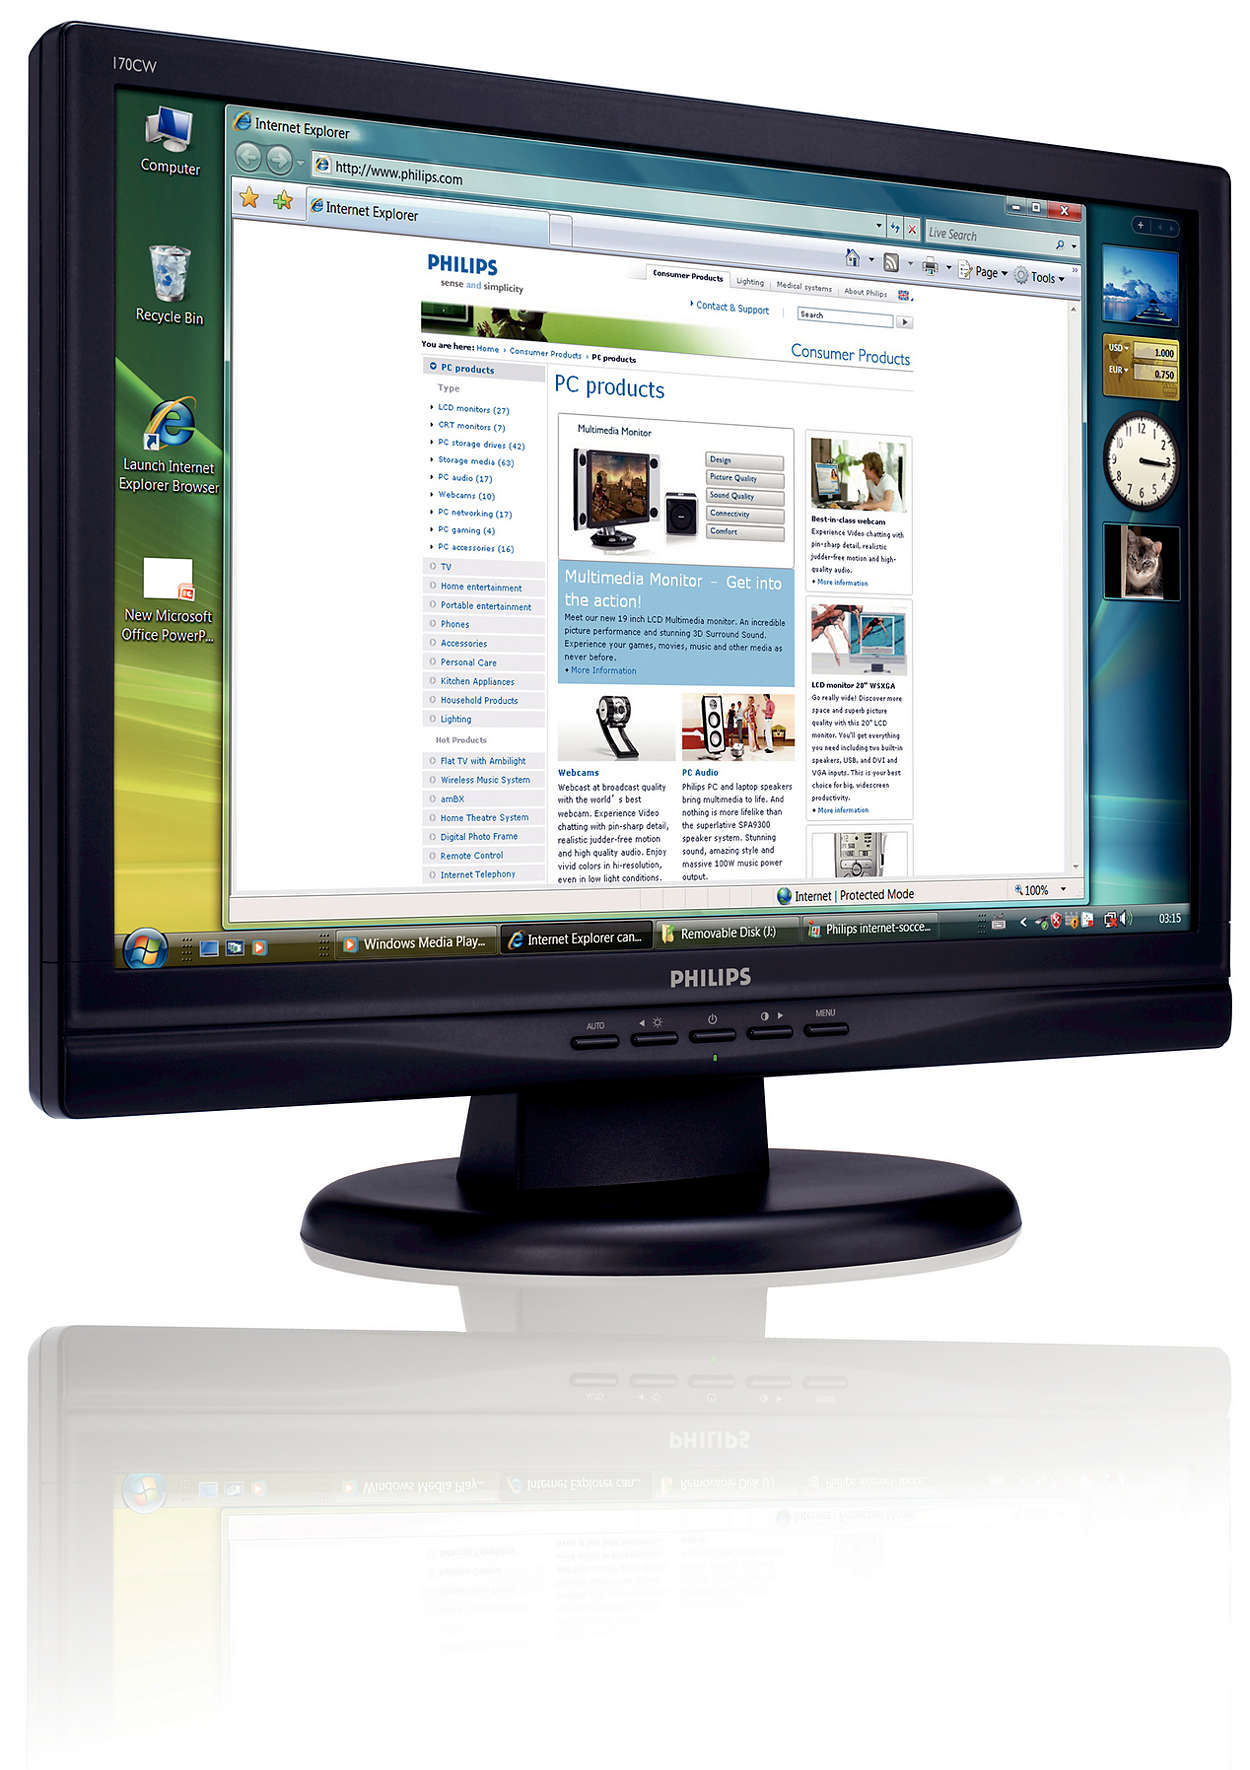 Best value for money widescreen LCD monitor